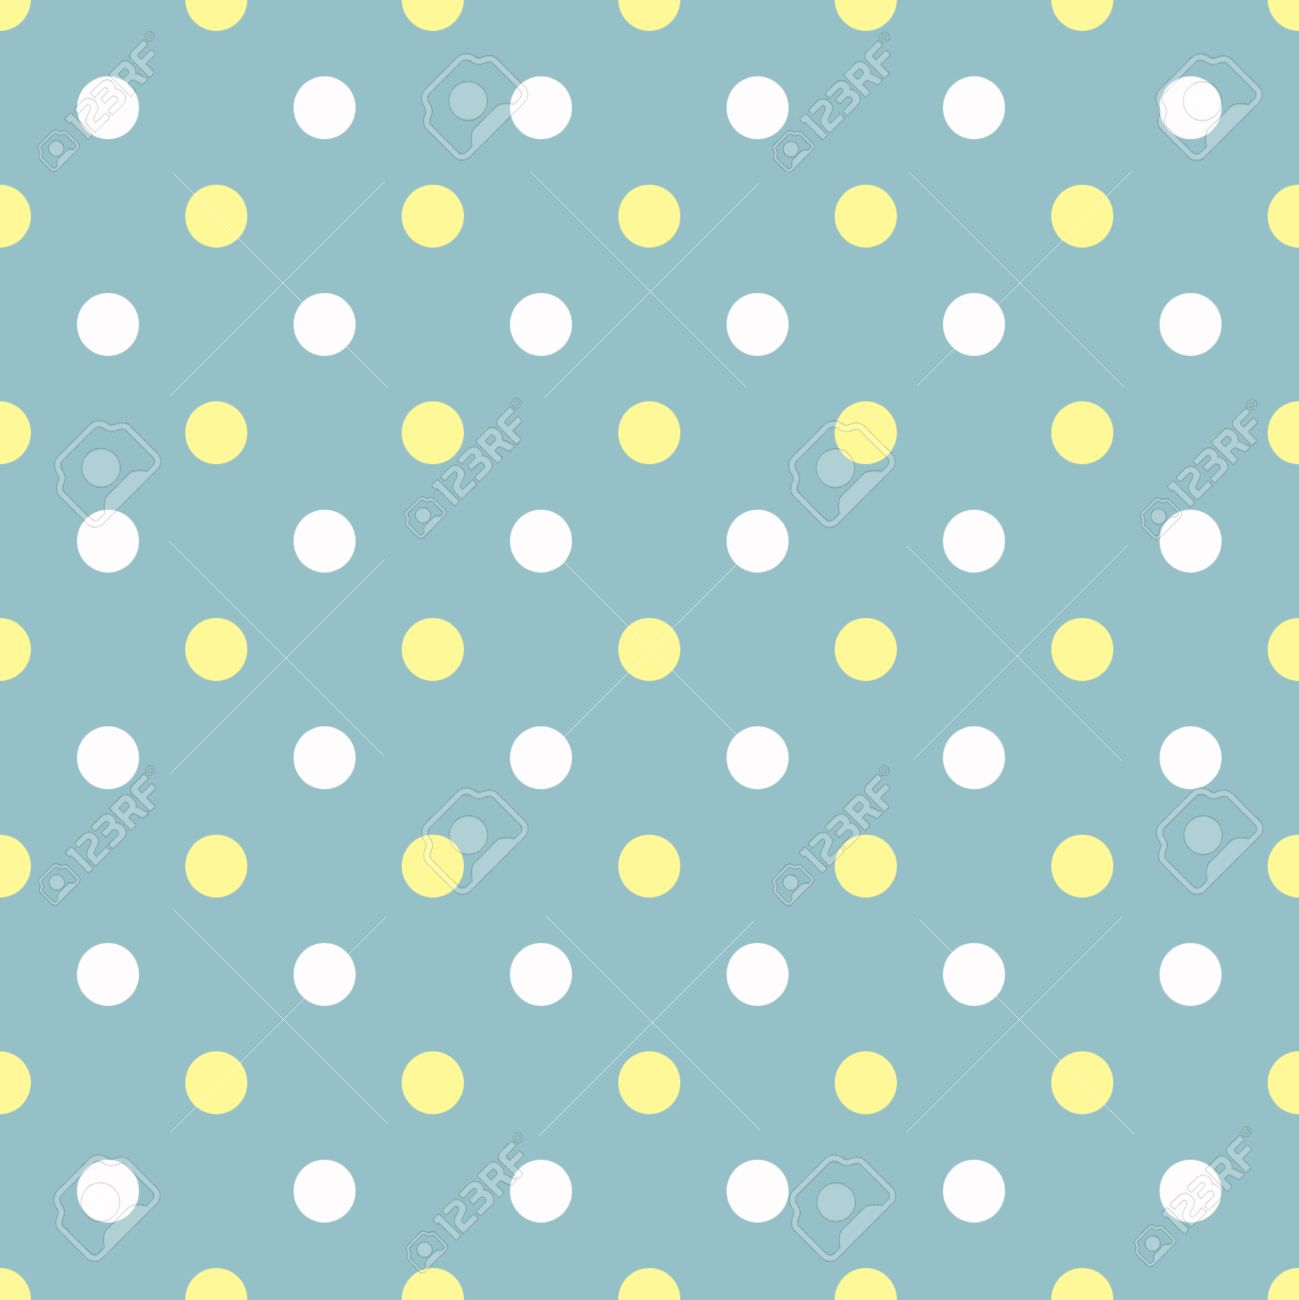 picture Blue Yellow Polka Dots white and yellow polka dots on blue